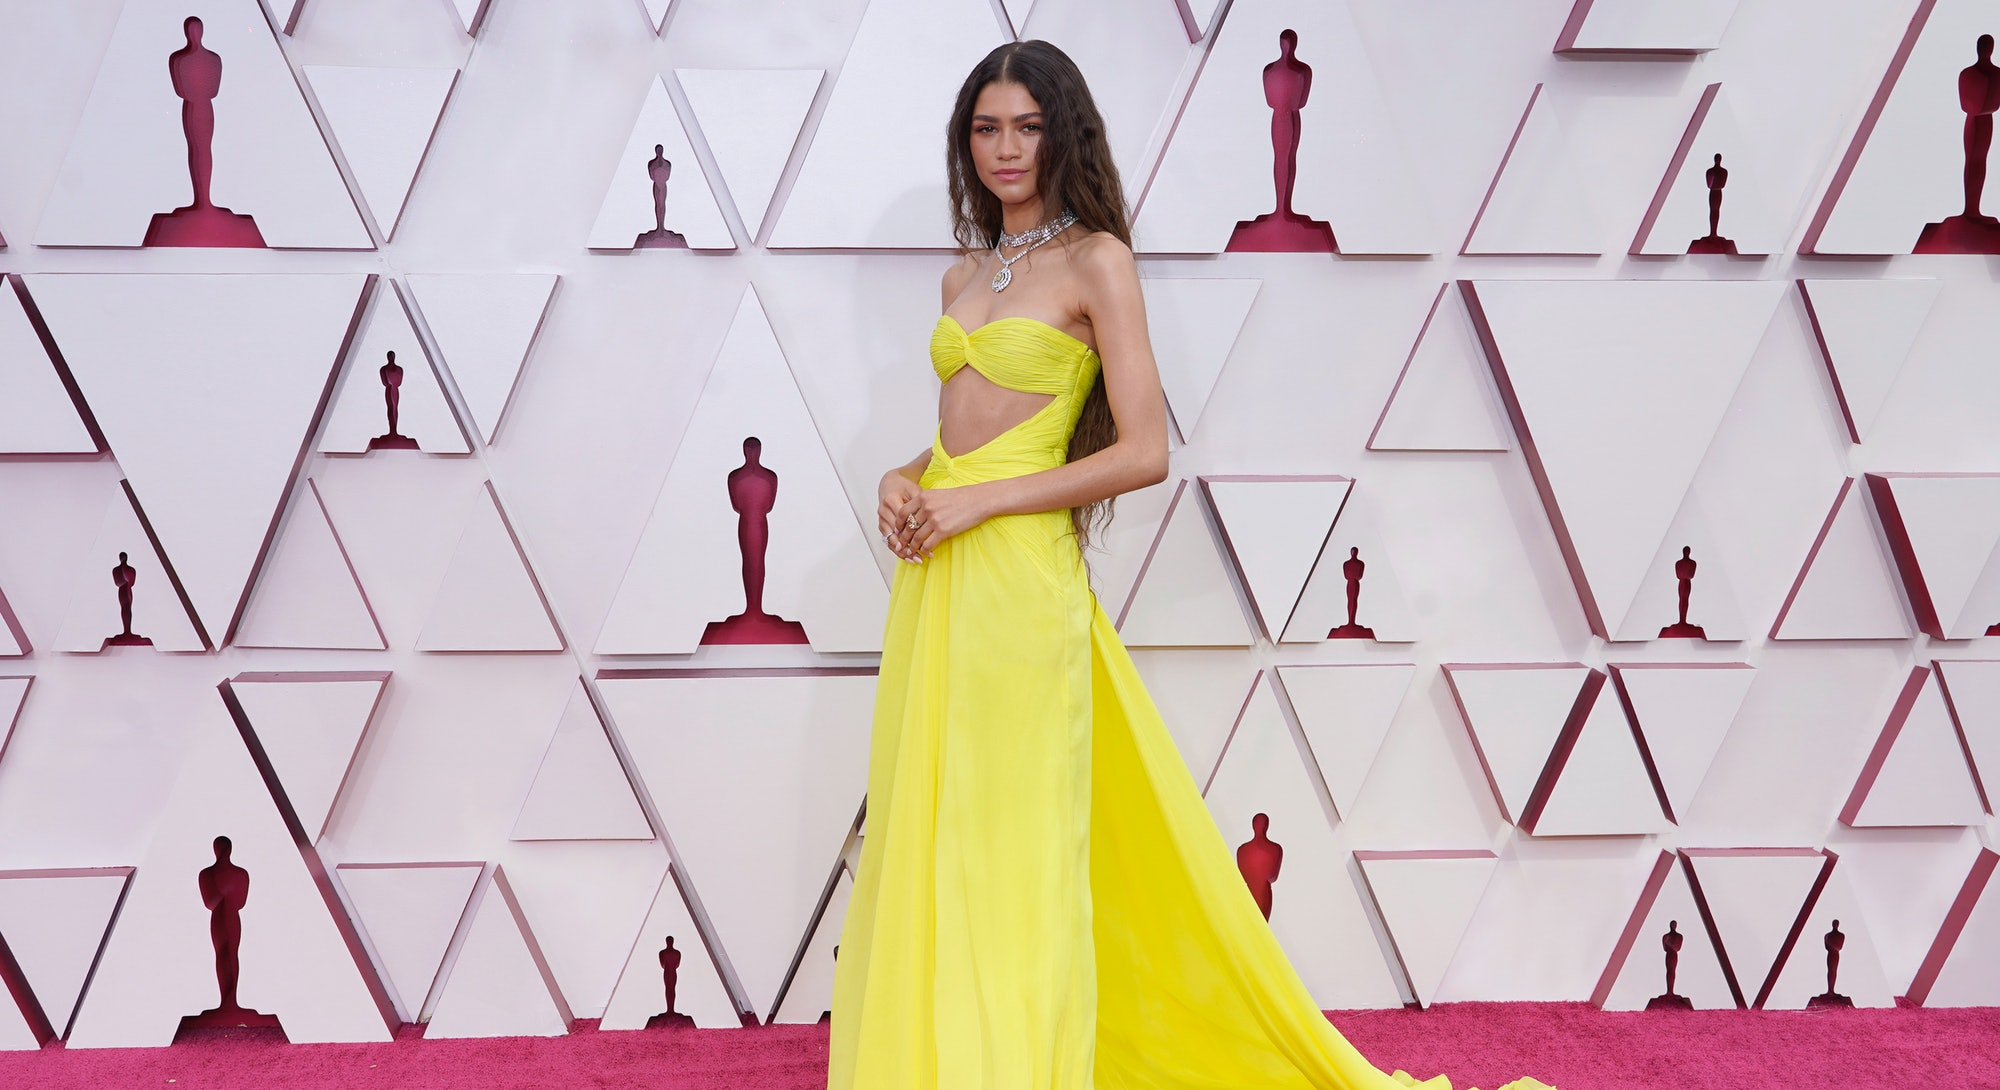 LOS ANGELES, CALIFORNIA – APRIL 25: Zendaya attends the 93rd Annual Academy Awards at Union Station ...